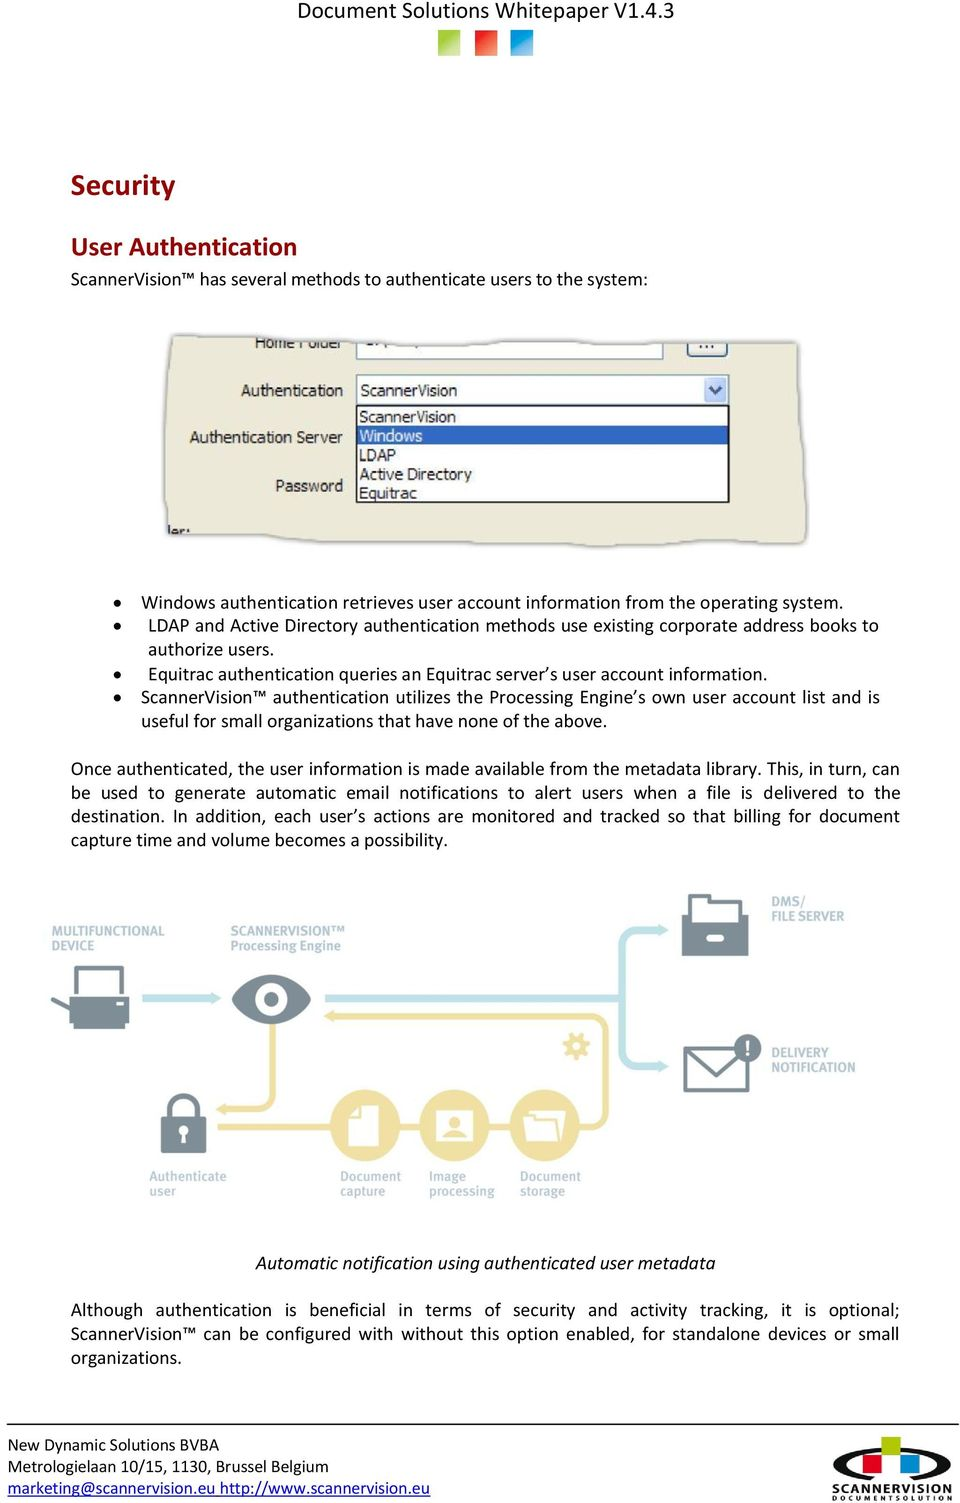 ScannerVision authentication utilizes the Processing Engine s own user account list and is useful for small organizations that have none of the above.